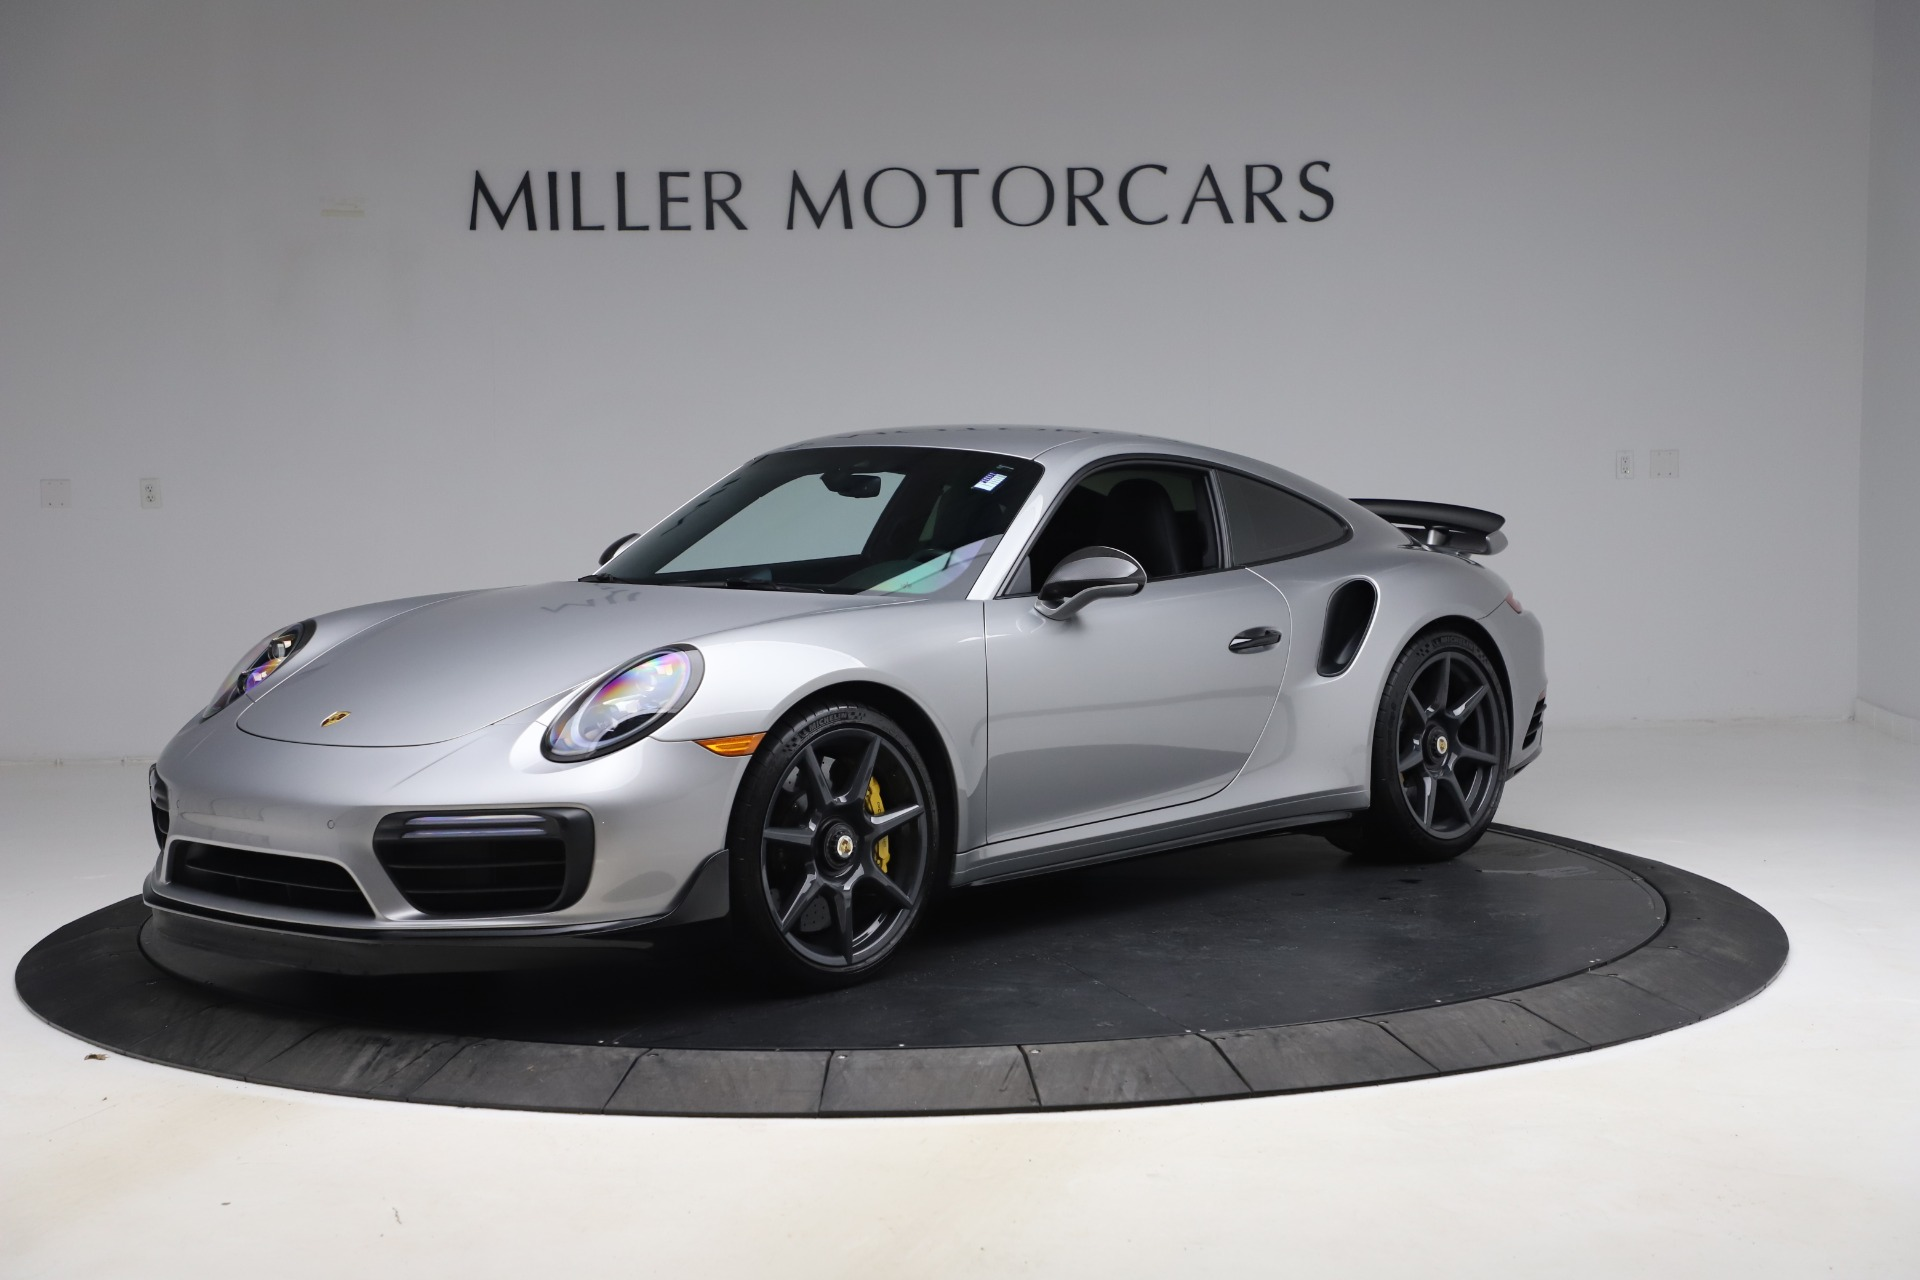 Used 2019 Porsche 911 Turbo S for sale $177,900 at Rolls-Royce Motor Cars Greenwich in Greenwich CT 06830 1